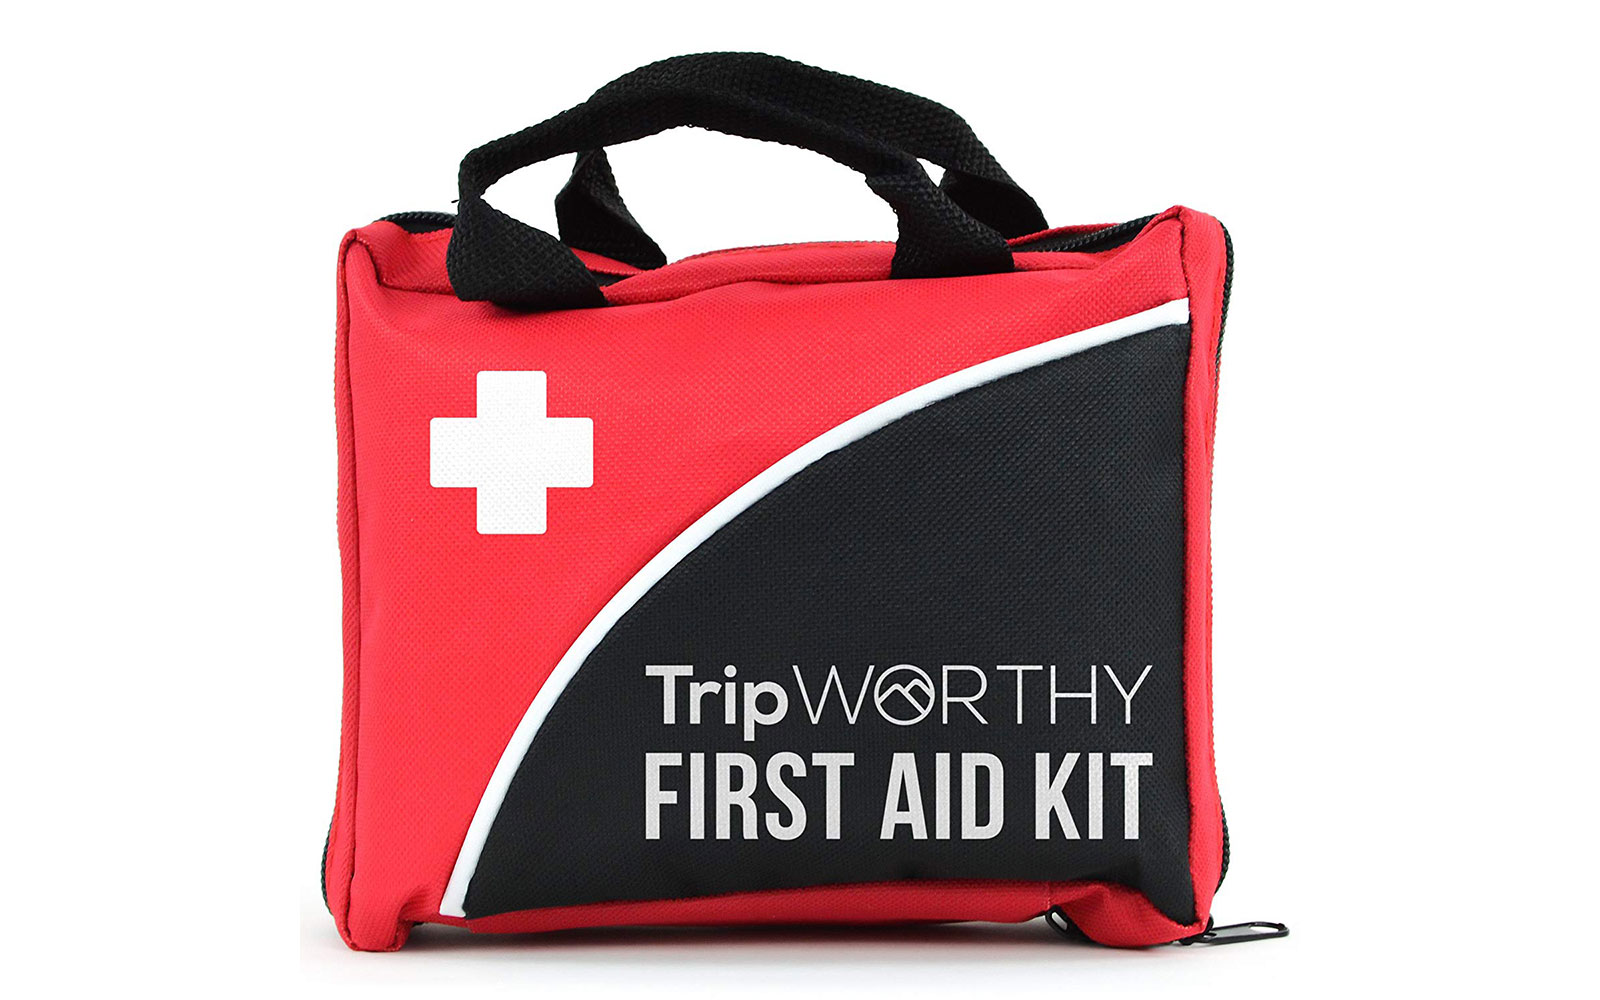 Tripworthy Compact First Aid Kit